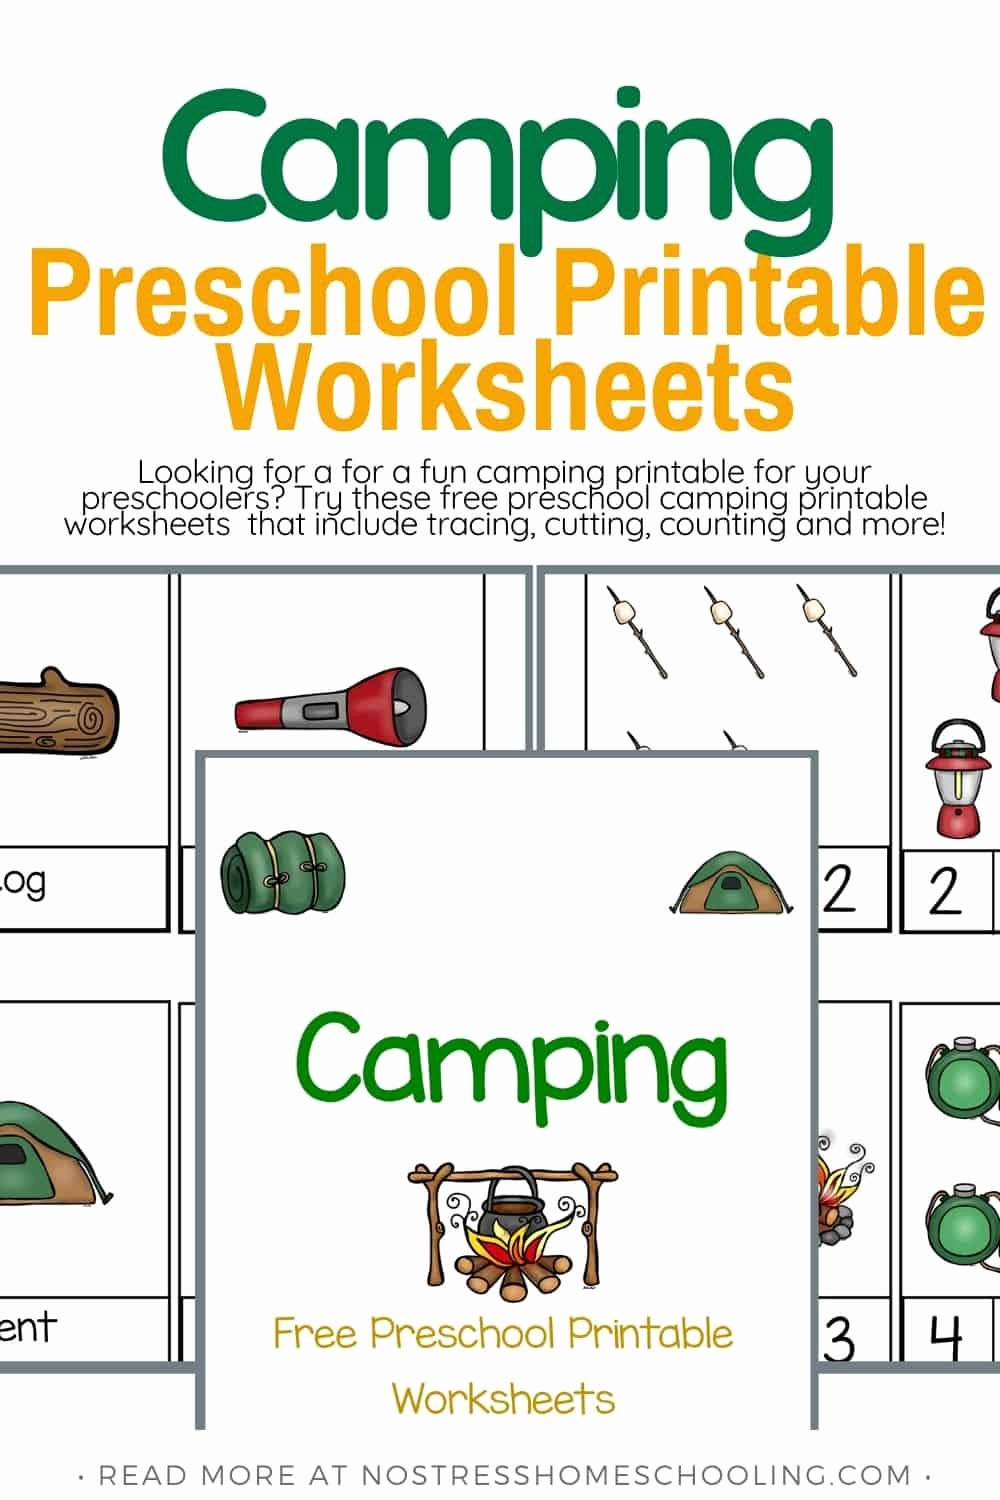 Camping Worksheets for Preschoolers Inspirational Free Camping Preschool Printable Worksheets